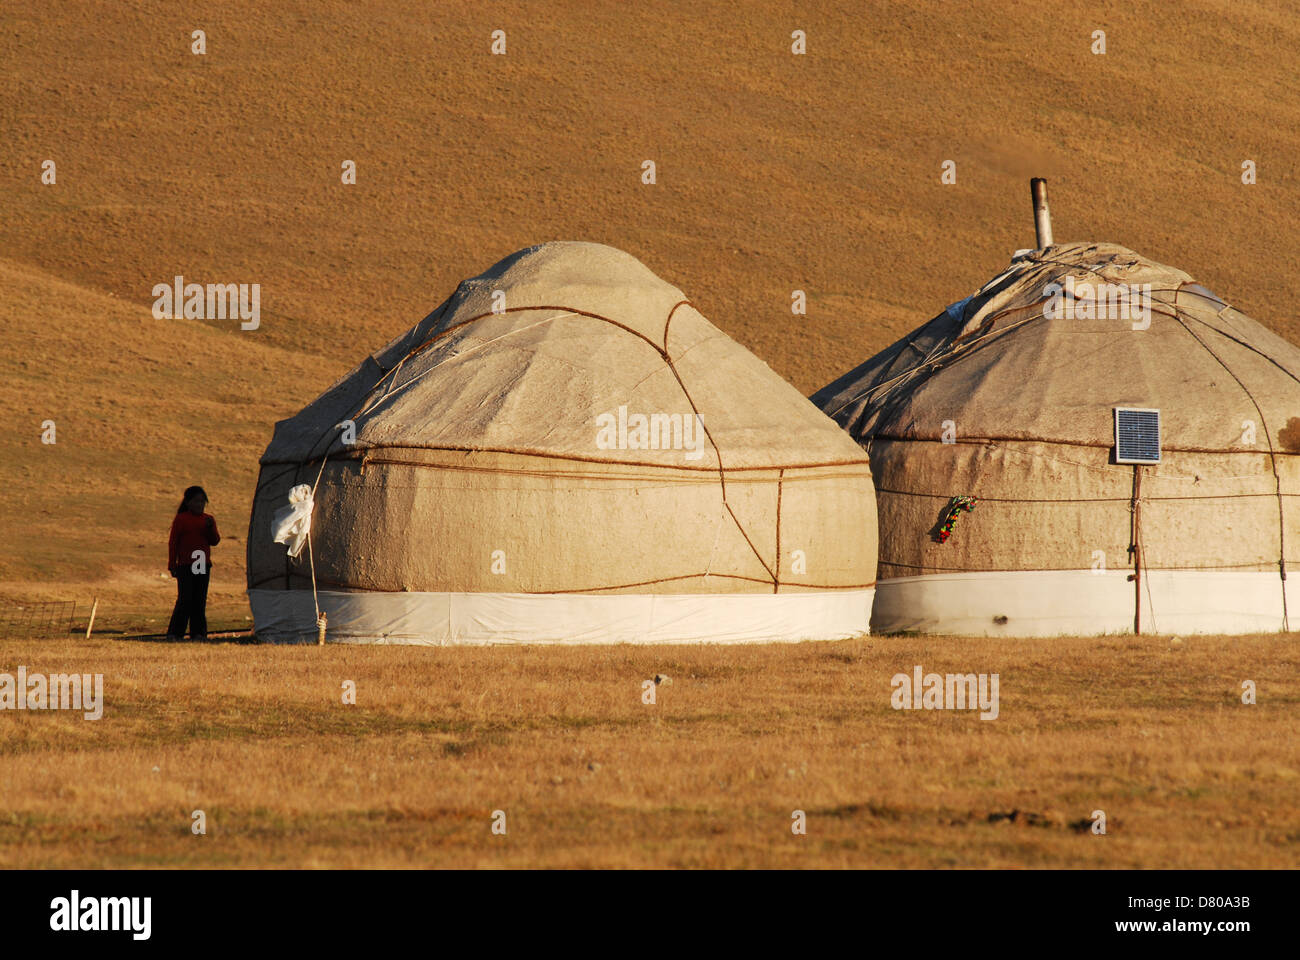 A girl stands near two Kyrgyz yurts at the sunset in the highland pastures at the Song Kul lake. Naryn region, Kyrgyzstan - Stock Image